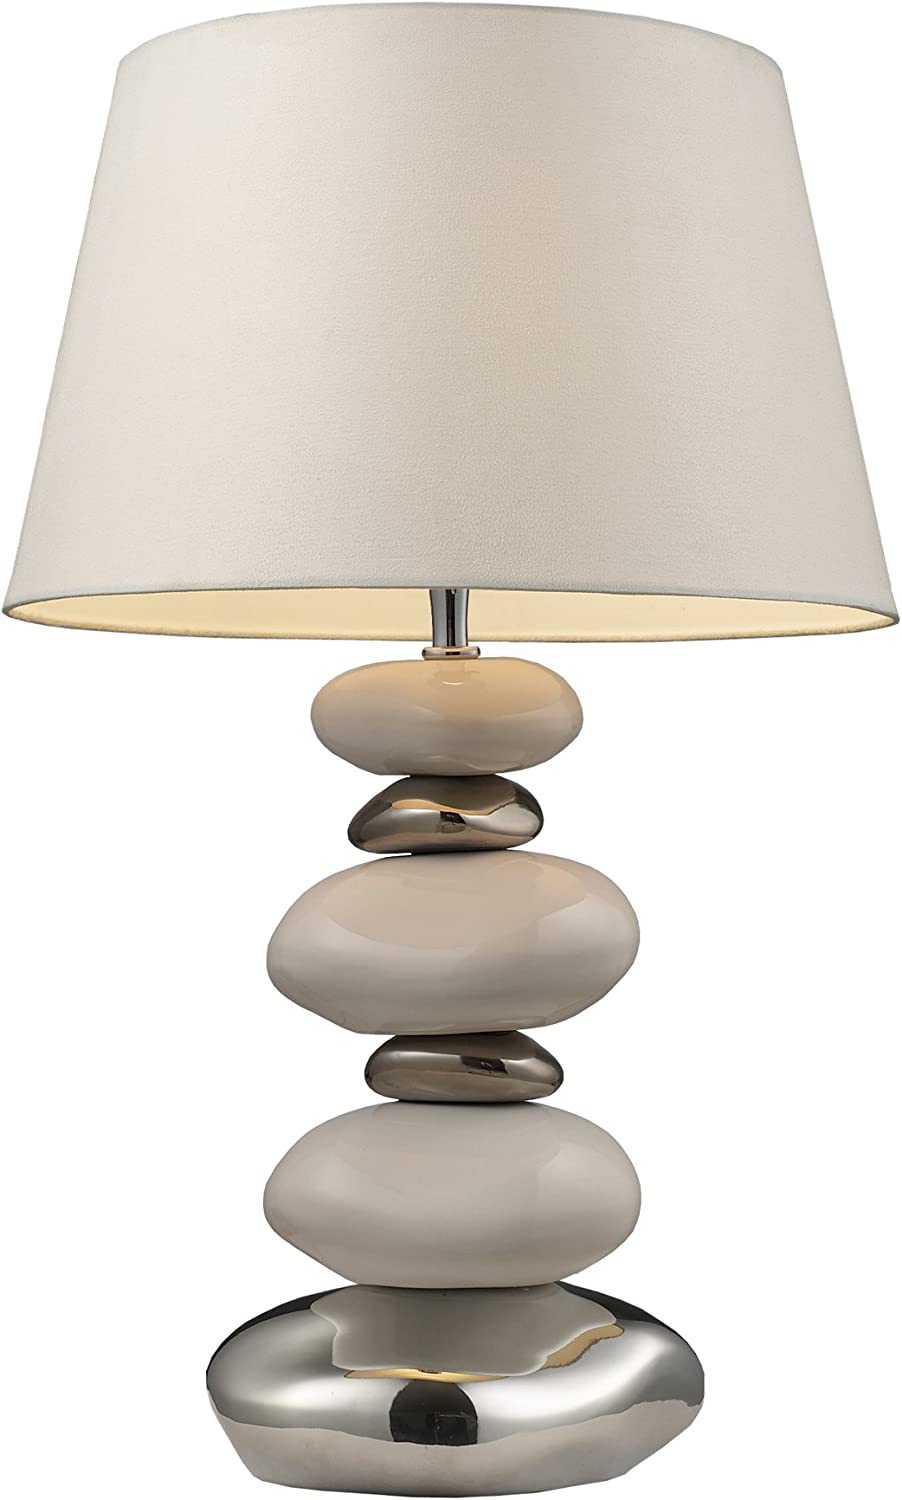 Dimond 3948 1 1-Light Table Lamp, 10  x 14  x 23, Chrome, Stone and Natural